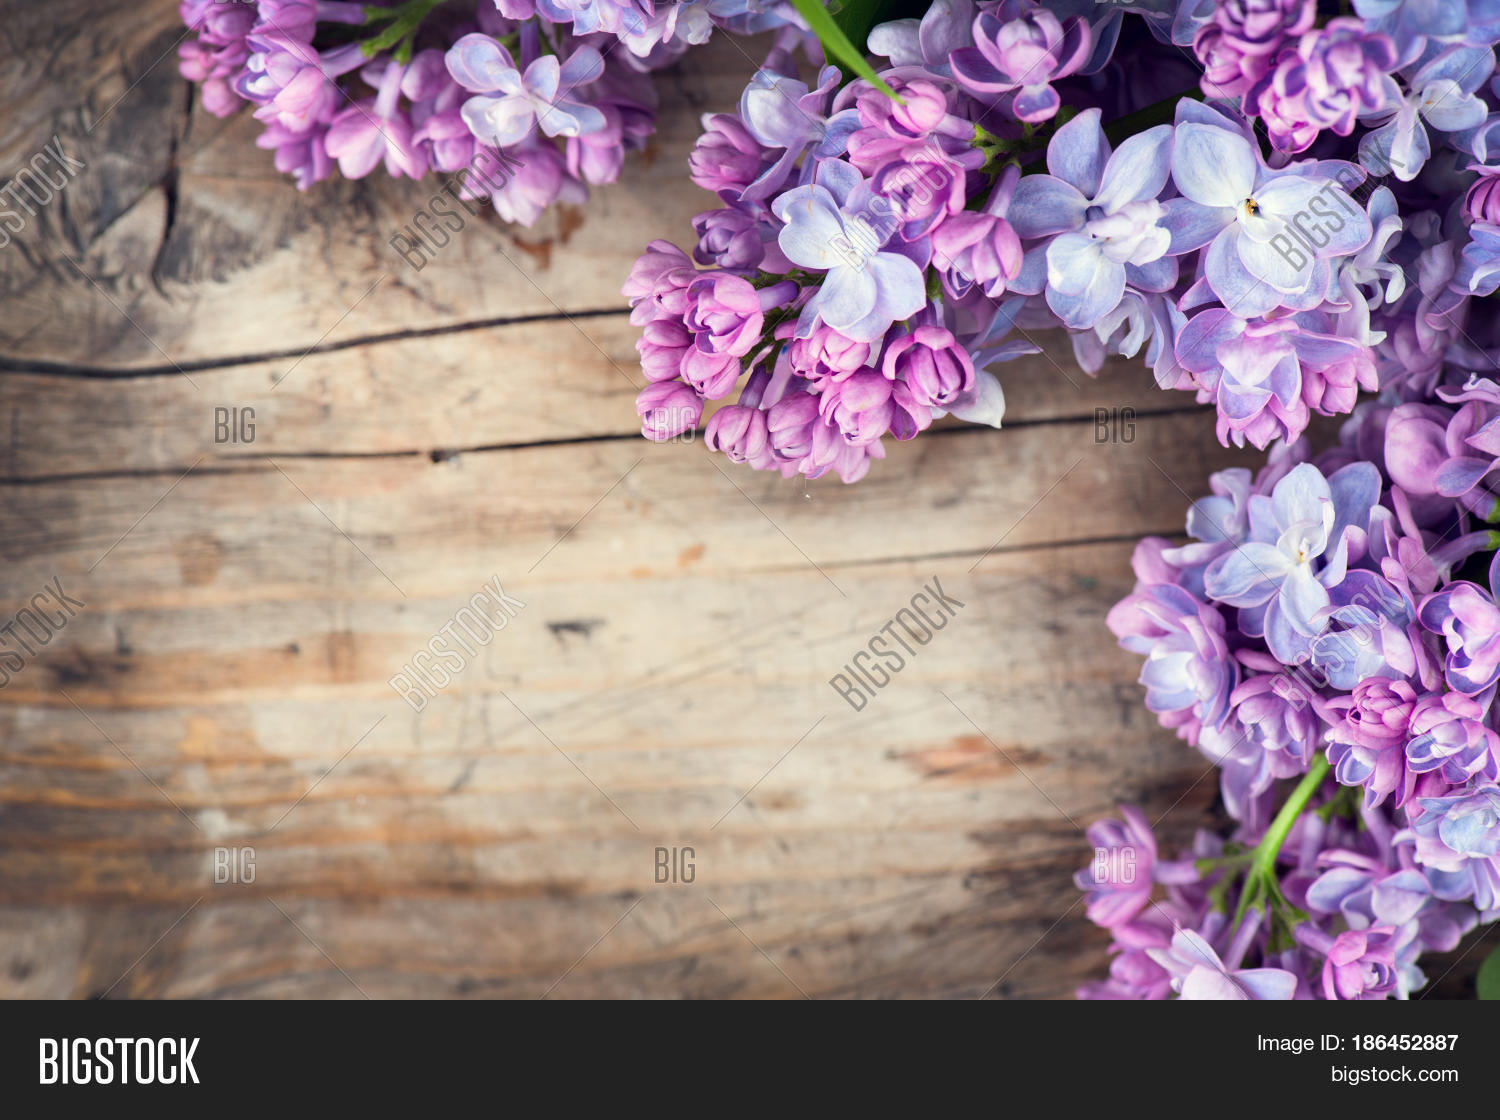 Lilac Flowers Bunch Image & Photo (Free Trial) | Bigstock